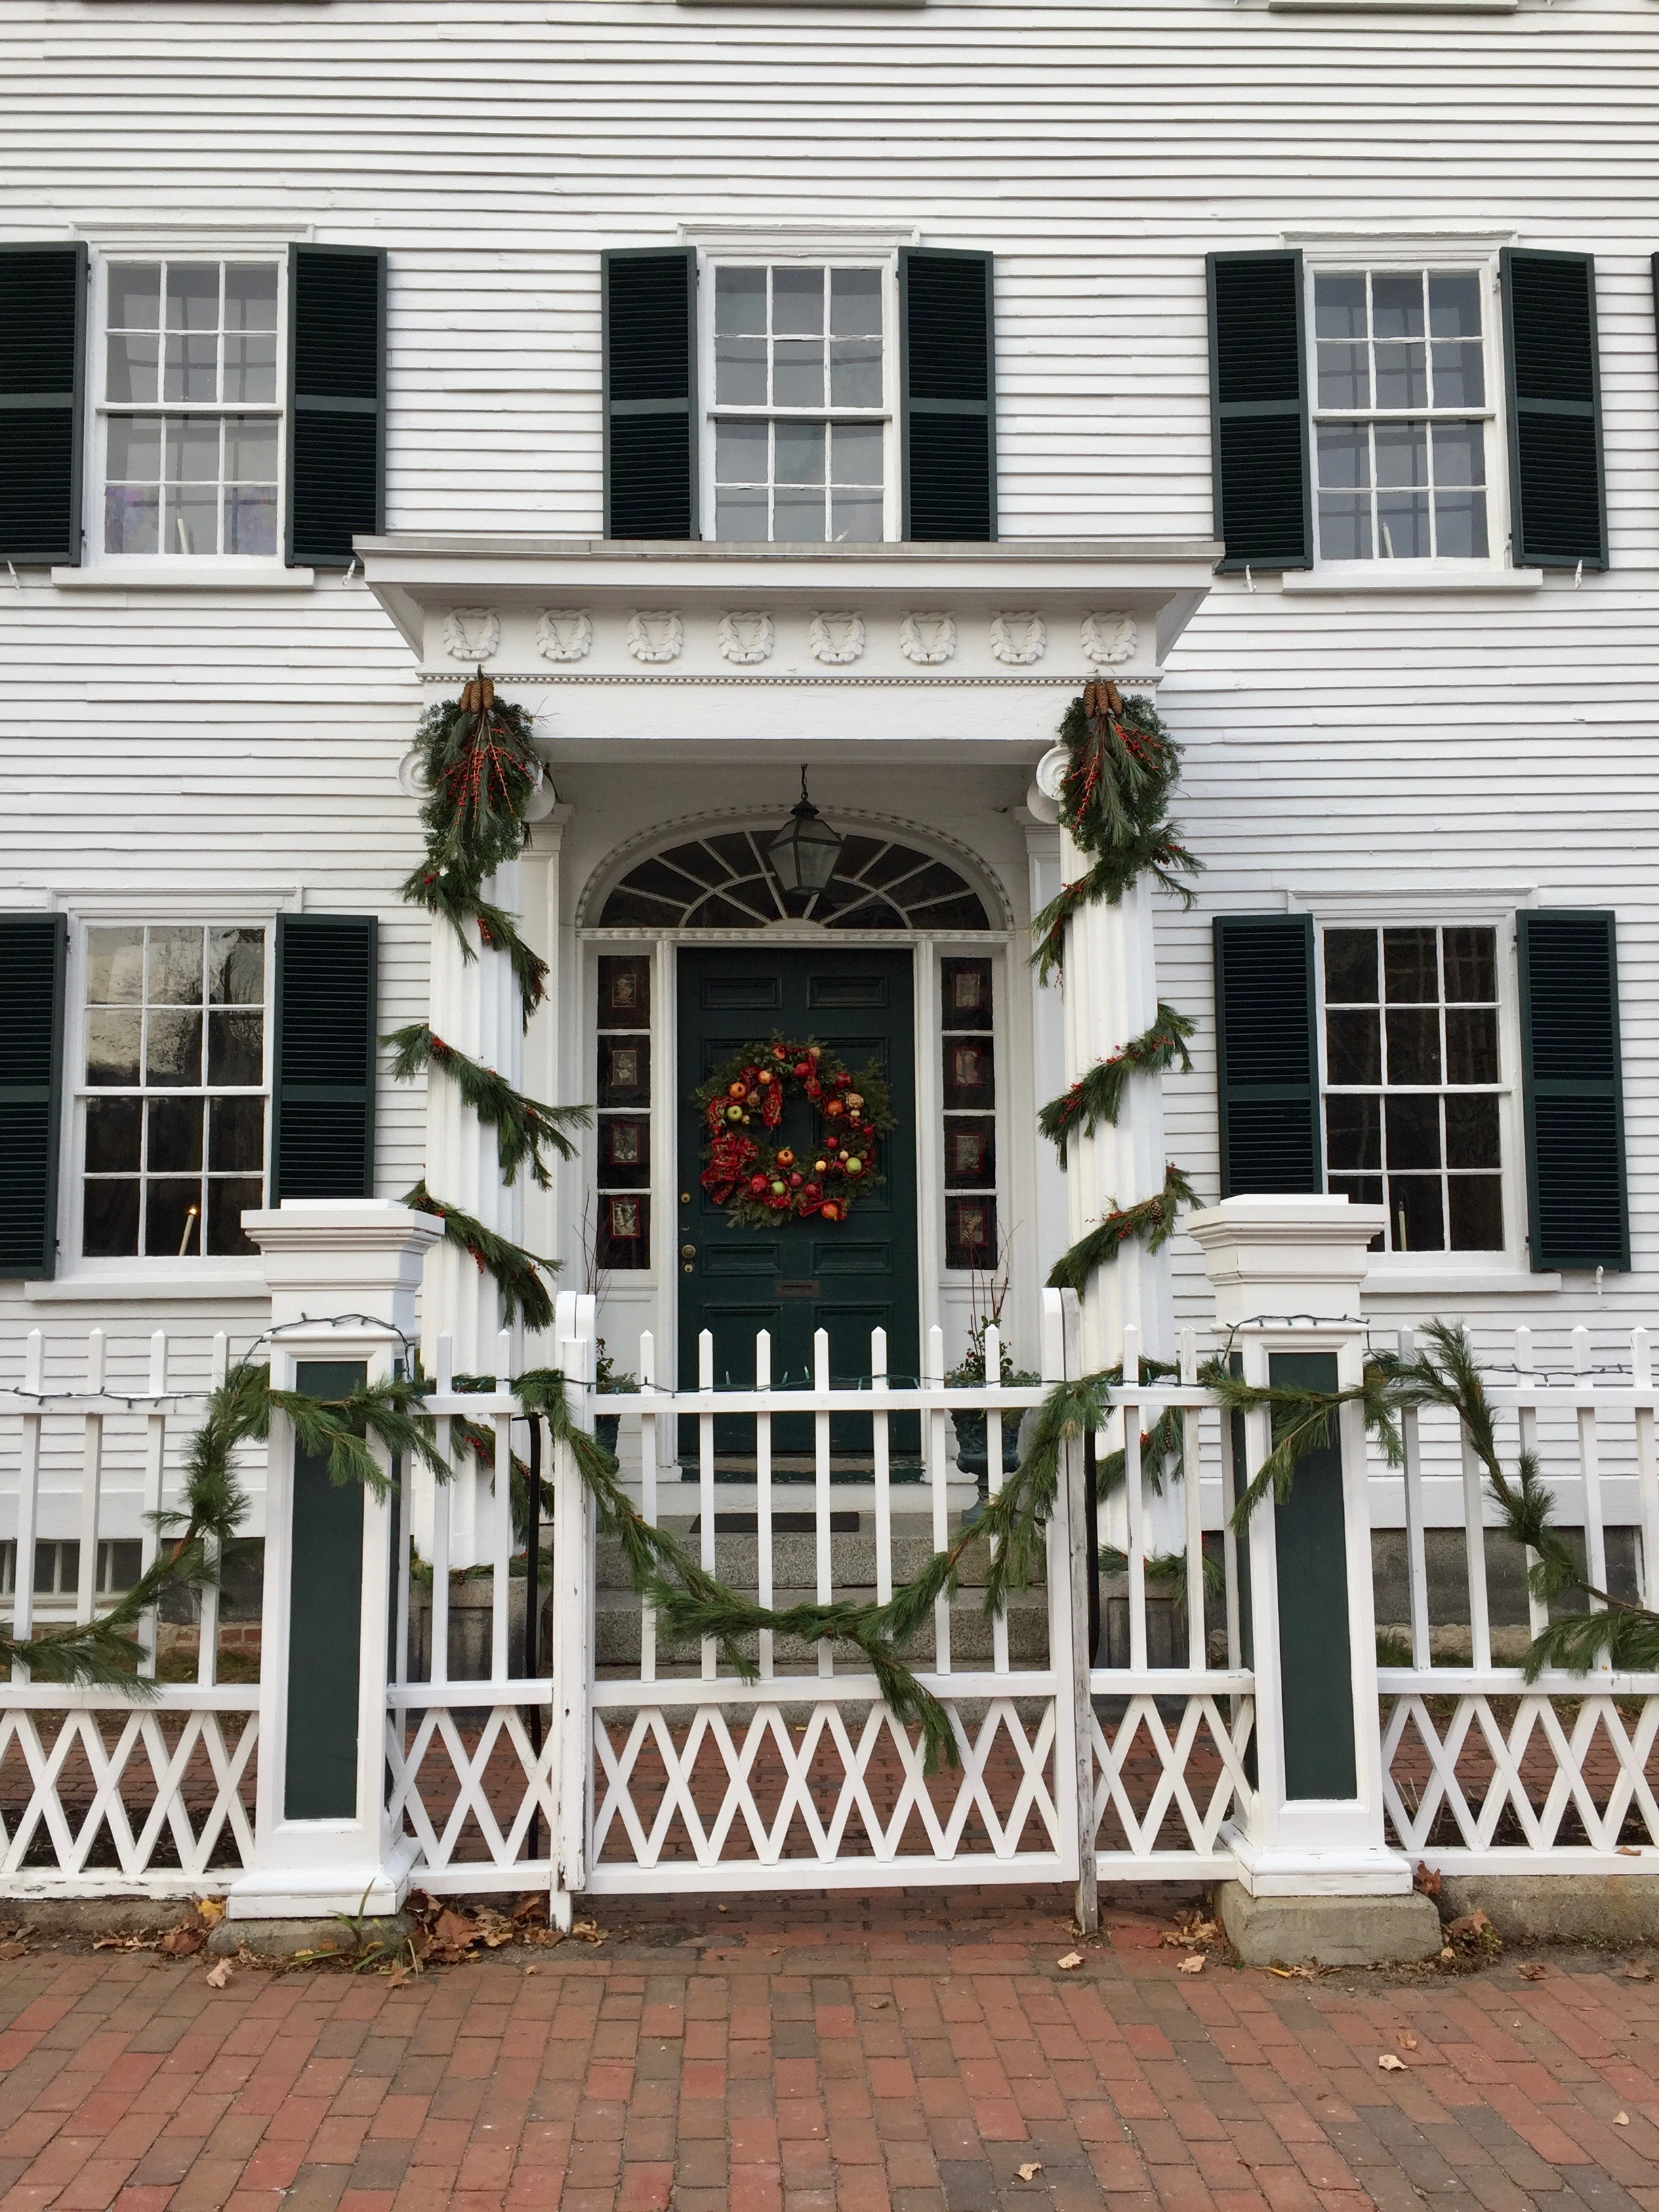 Christmas Wreath ideas from New England - portsmouth nh 6.jpg